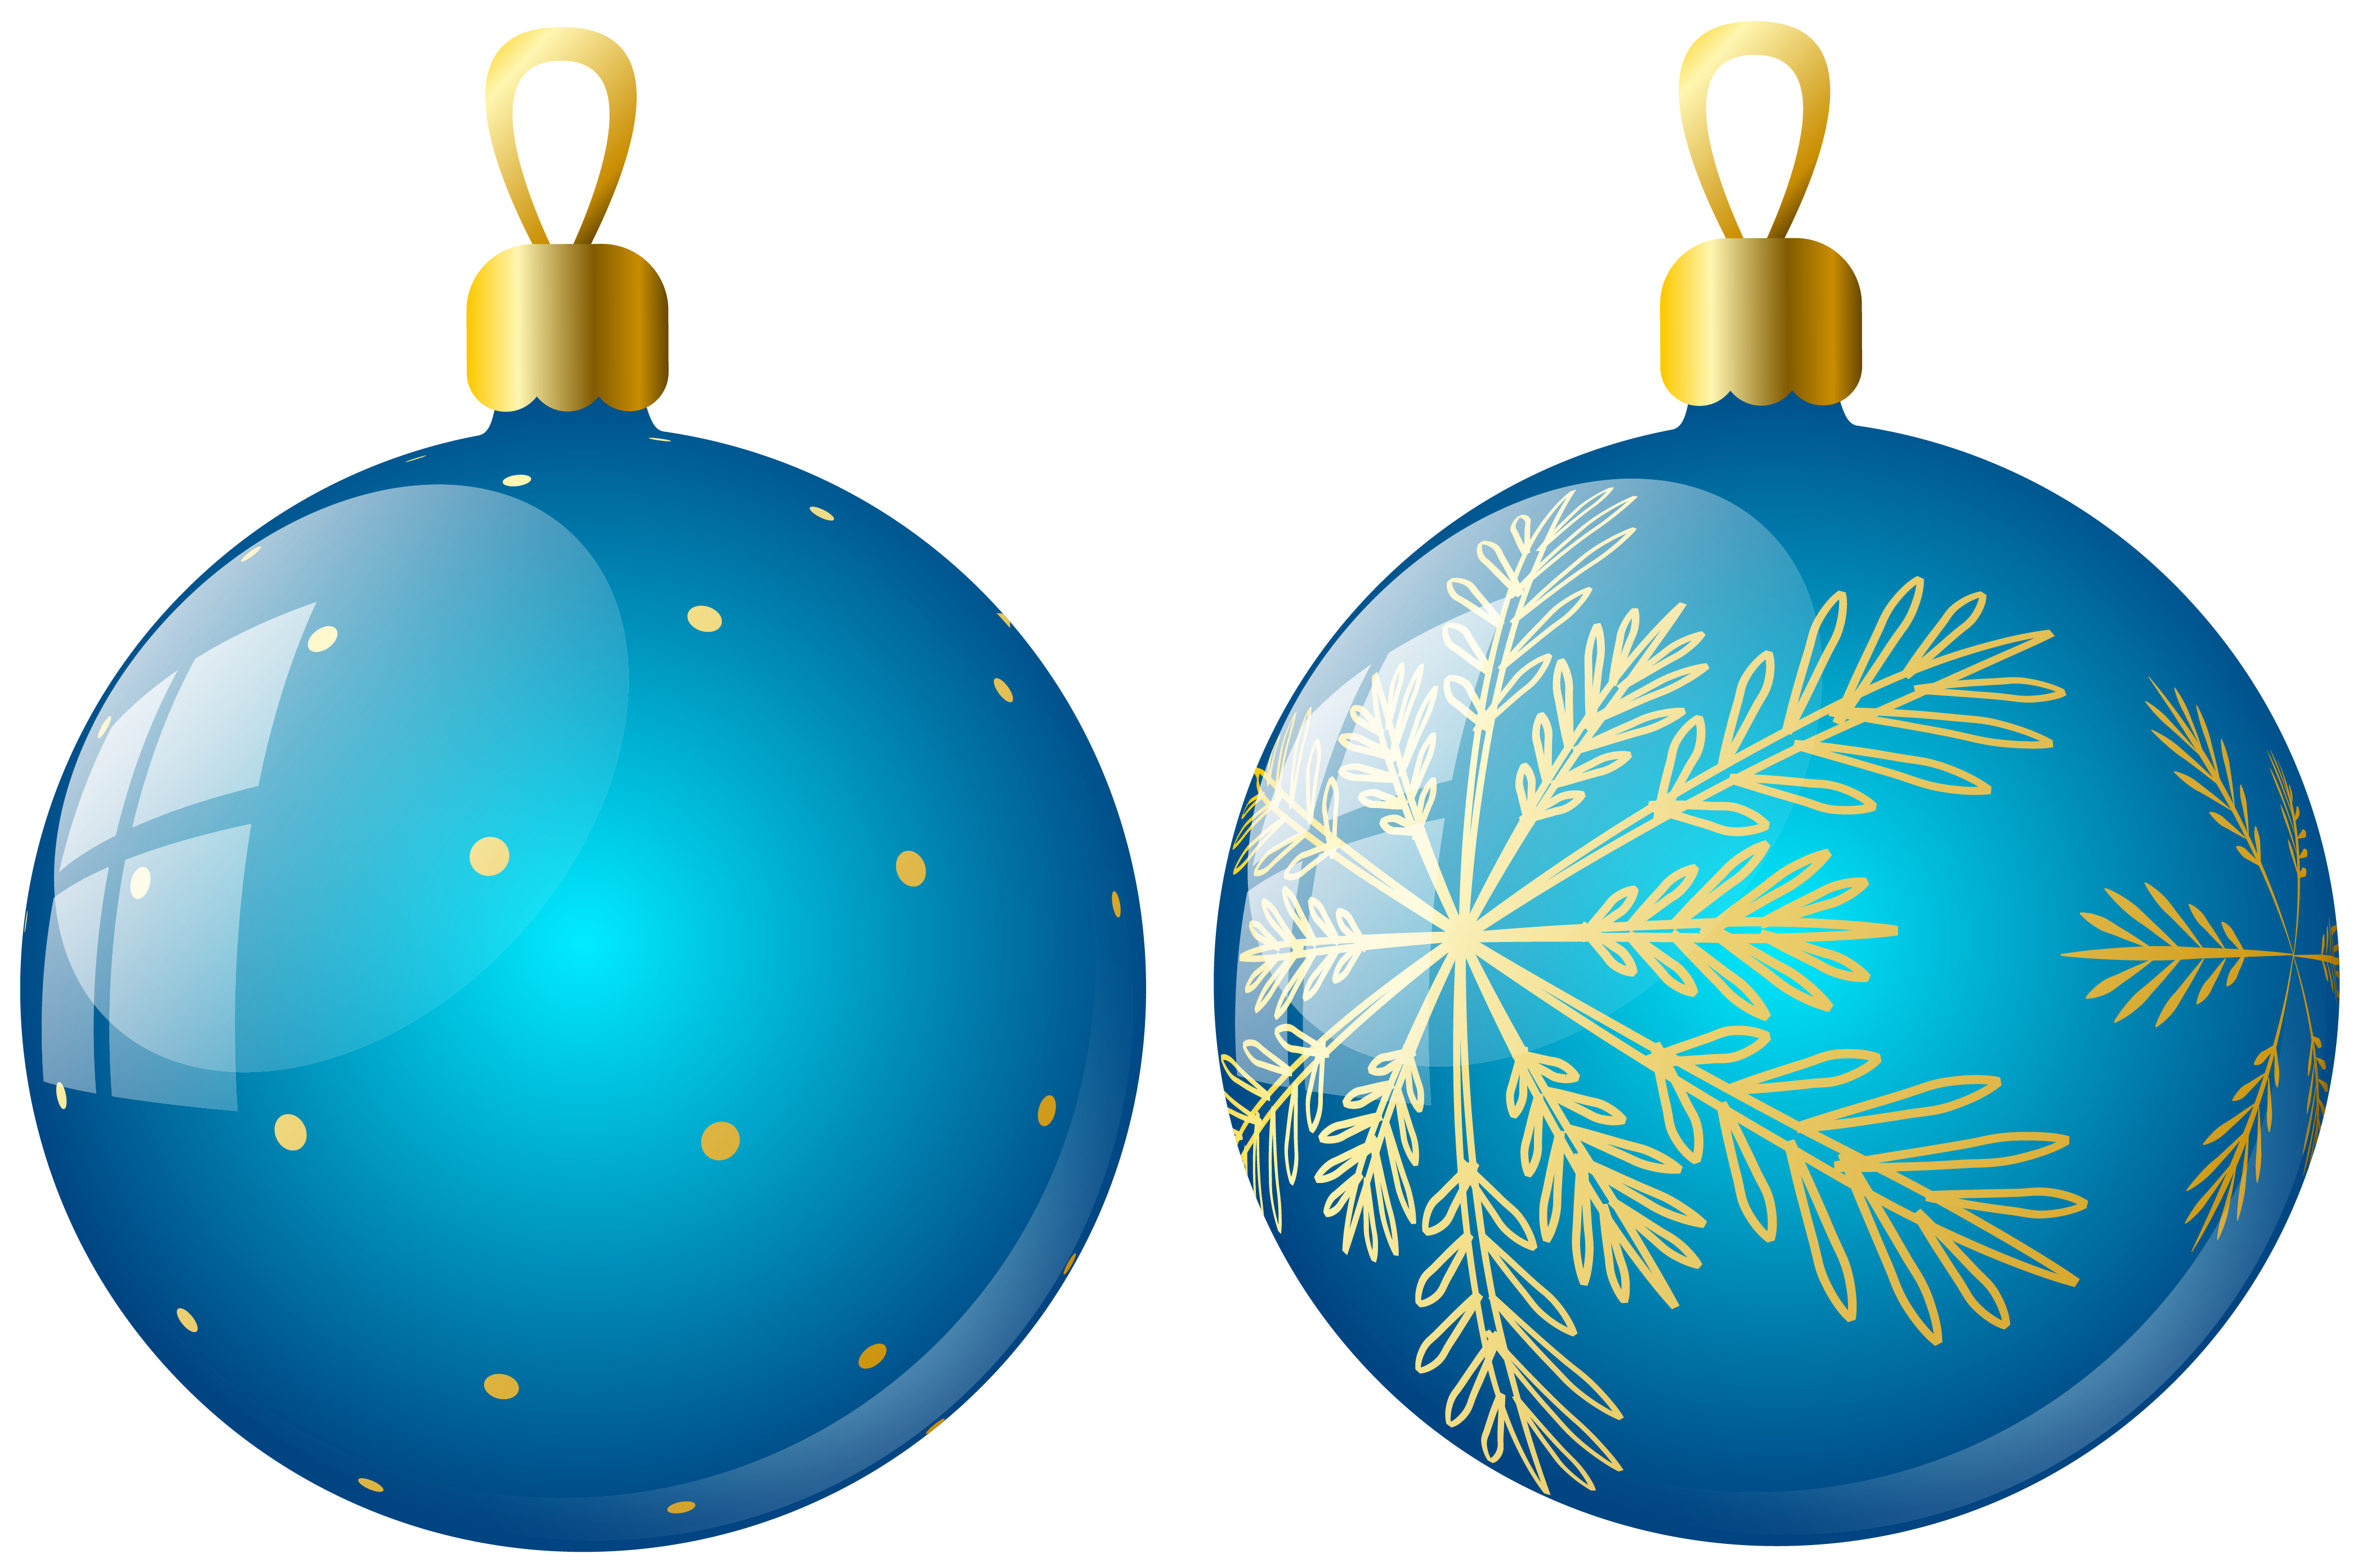 svg free download Ornaments clipart. Transparent two blue christmas